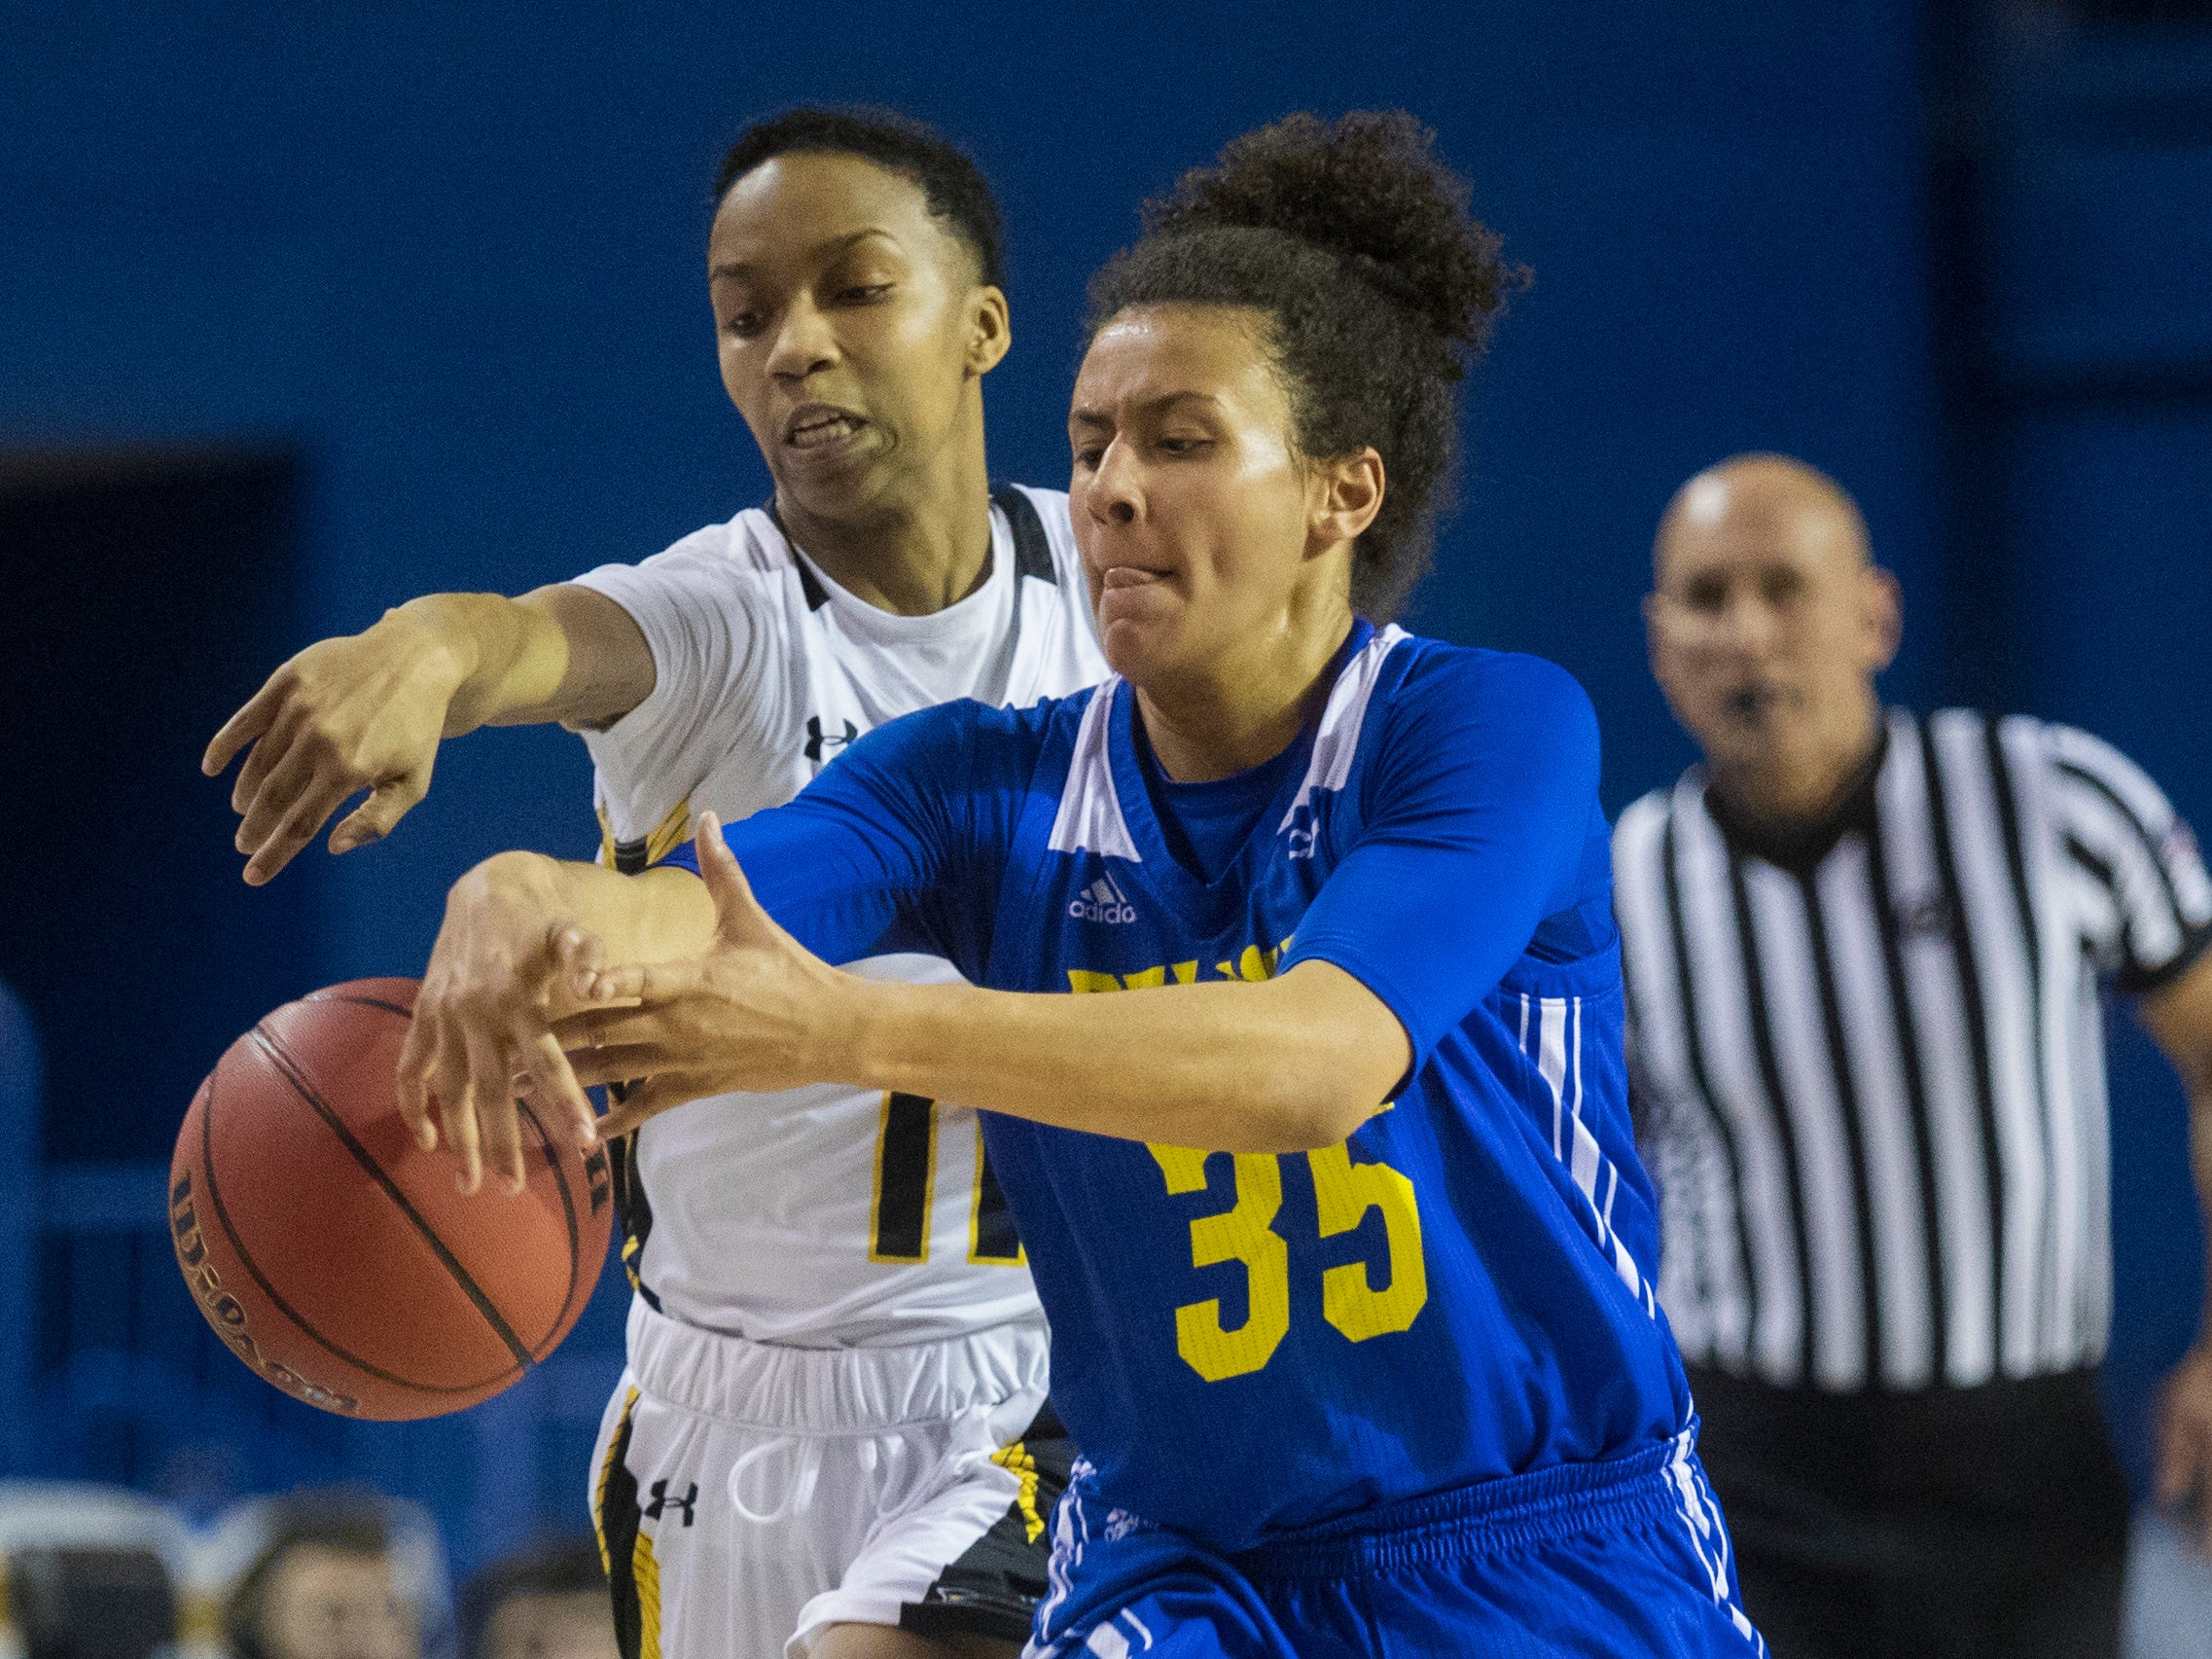 Delaware's Alison Lewis (35) races for possession against Towson's Q. Murray (11) Thursday night against Towson in the CAA quarterfinals. Towson defeated Delaware 59-49.